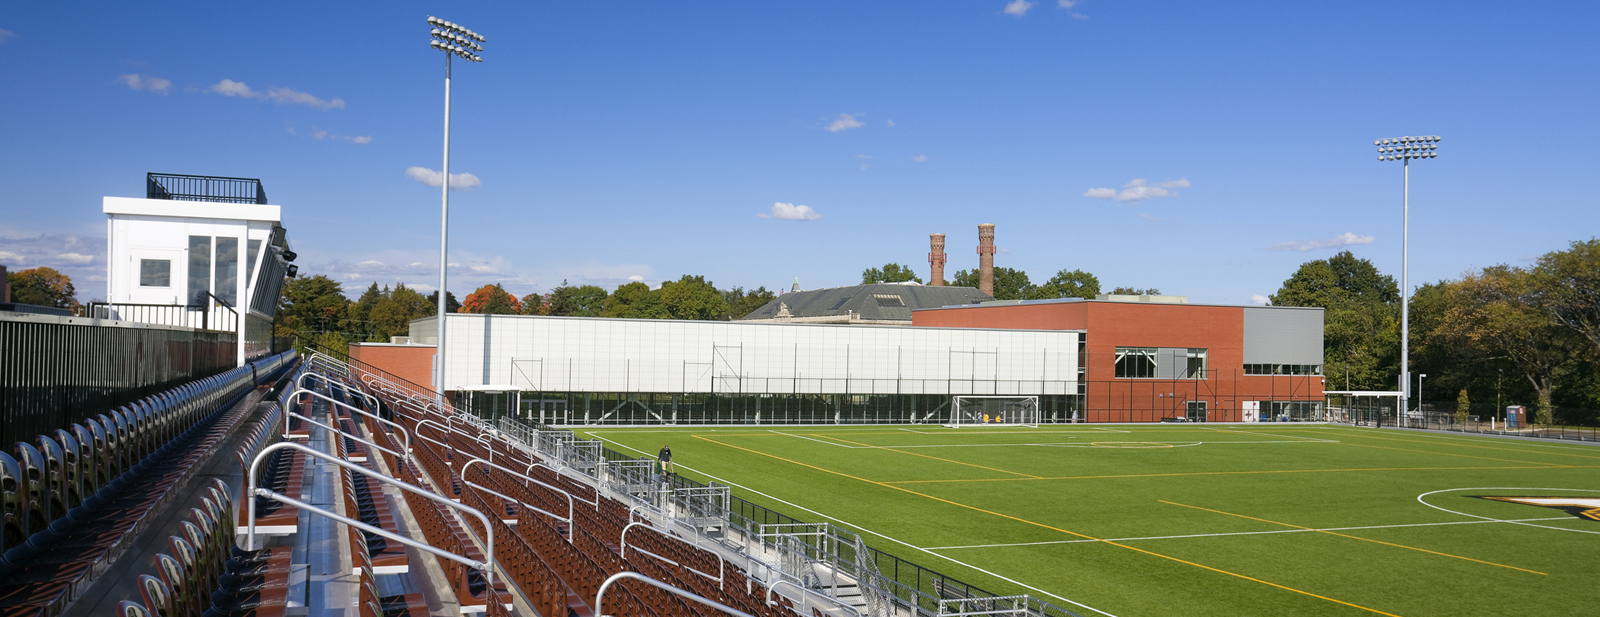 Adelphi University, Centers for Sport and Performing Arts, Garden City, NY